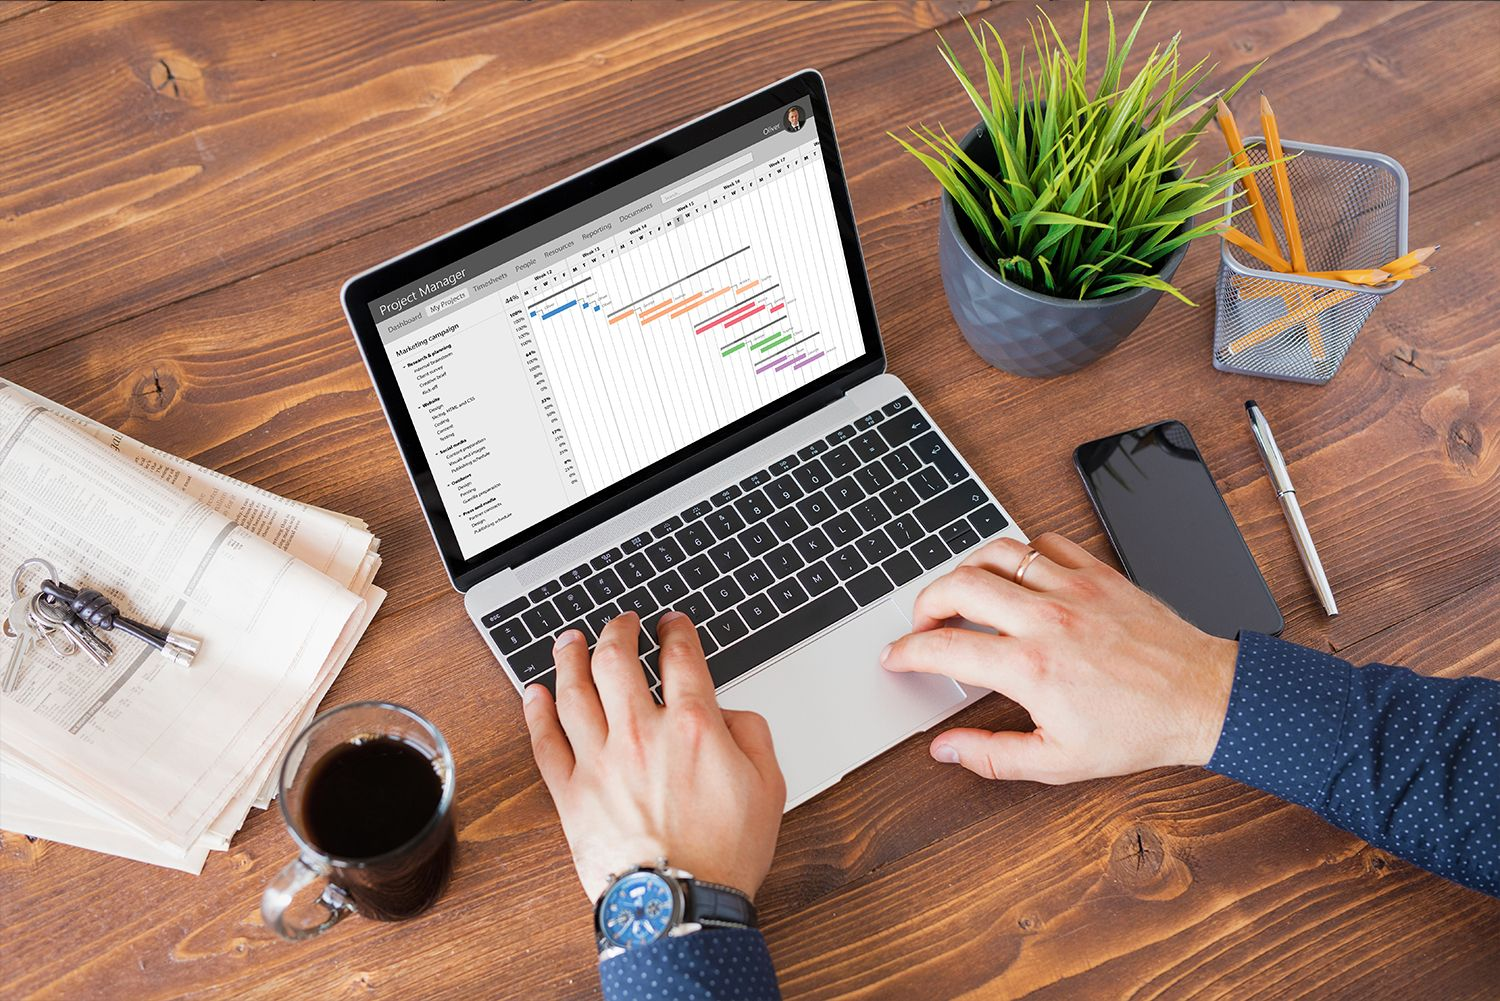 27/02/2020· making an excel calendar is a serious step up from using microsoft word, and like moving into the future when compared to handwritten schedules. How To Make A Restaurant Work Schedule With Free Excel Template 7shifts